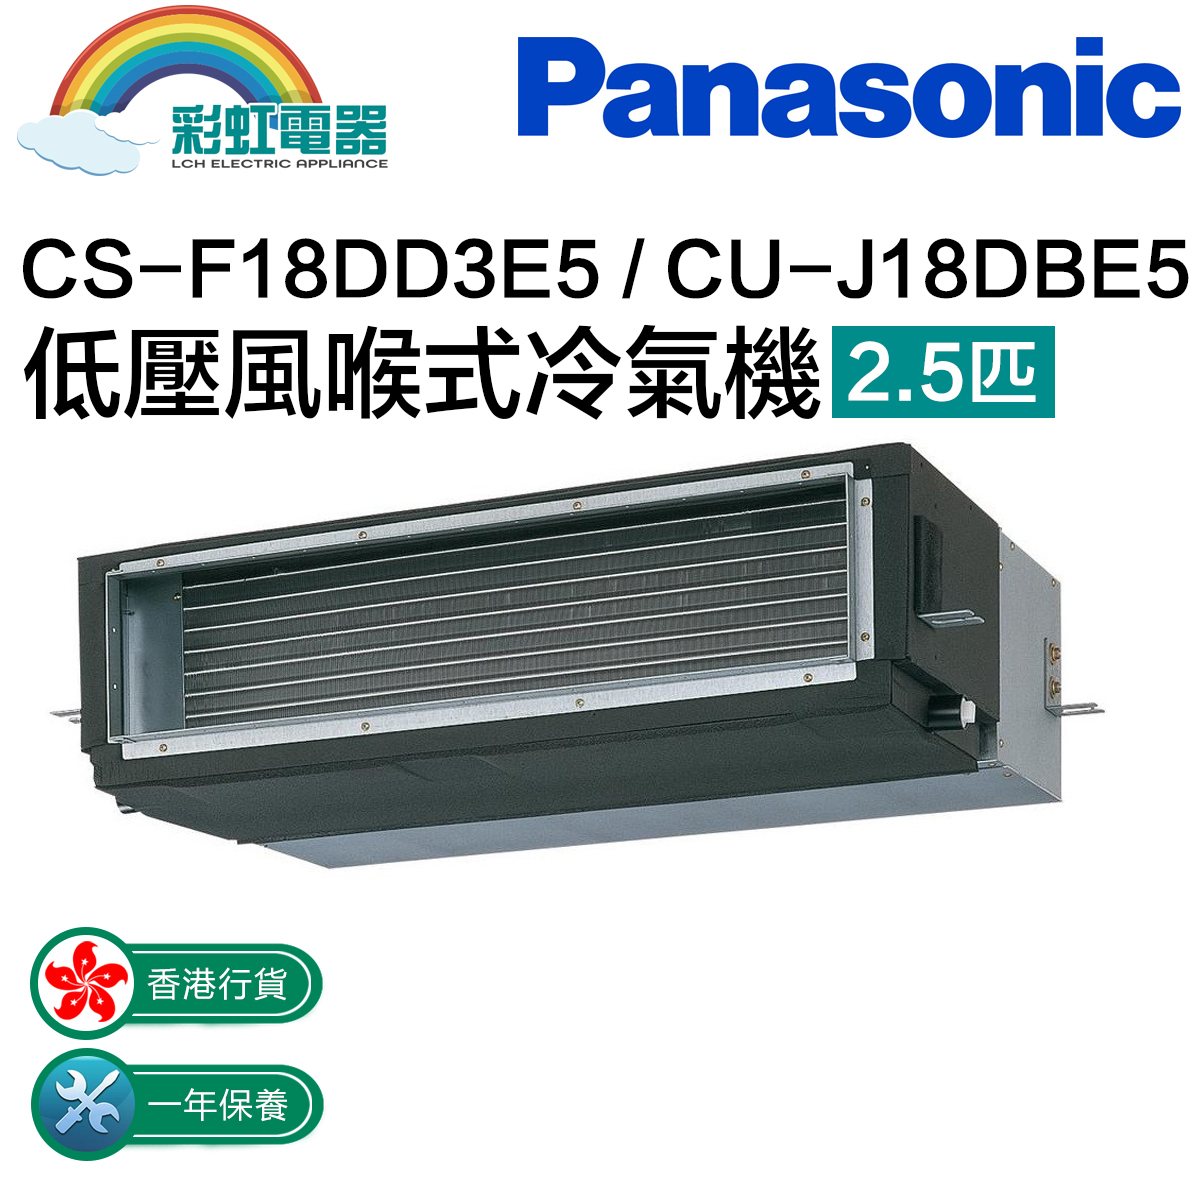 CS-F24DD3E5 / CU-J24DBE8 Net cooling low pressure air duct type air conditioner 2.5 horse